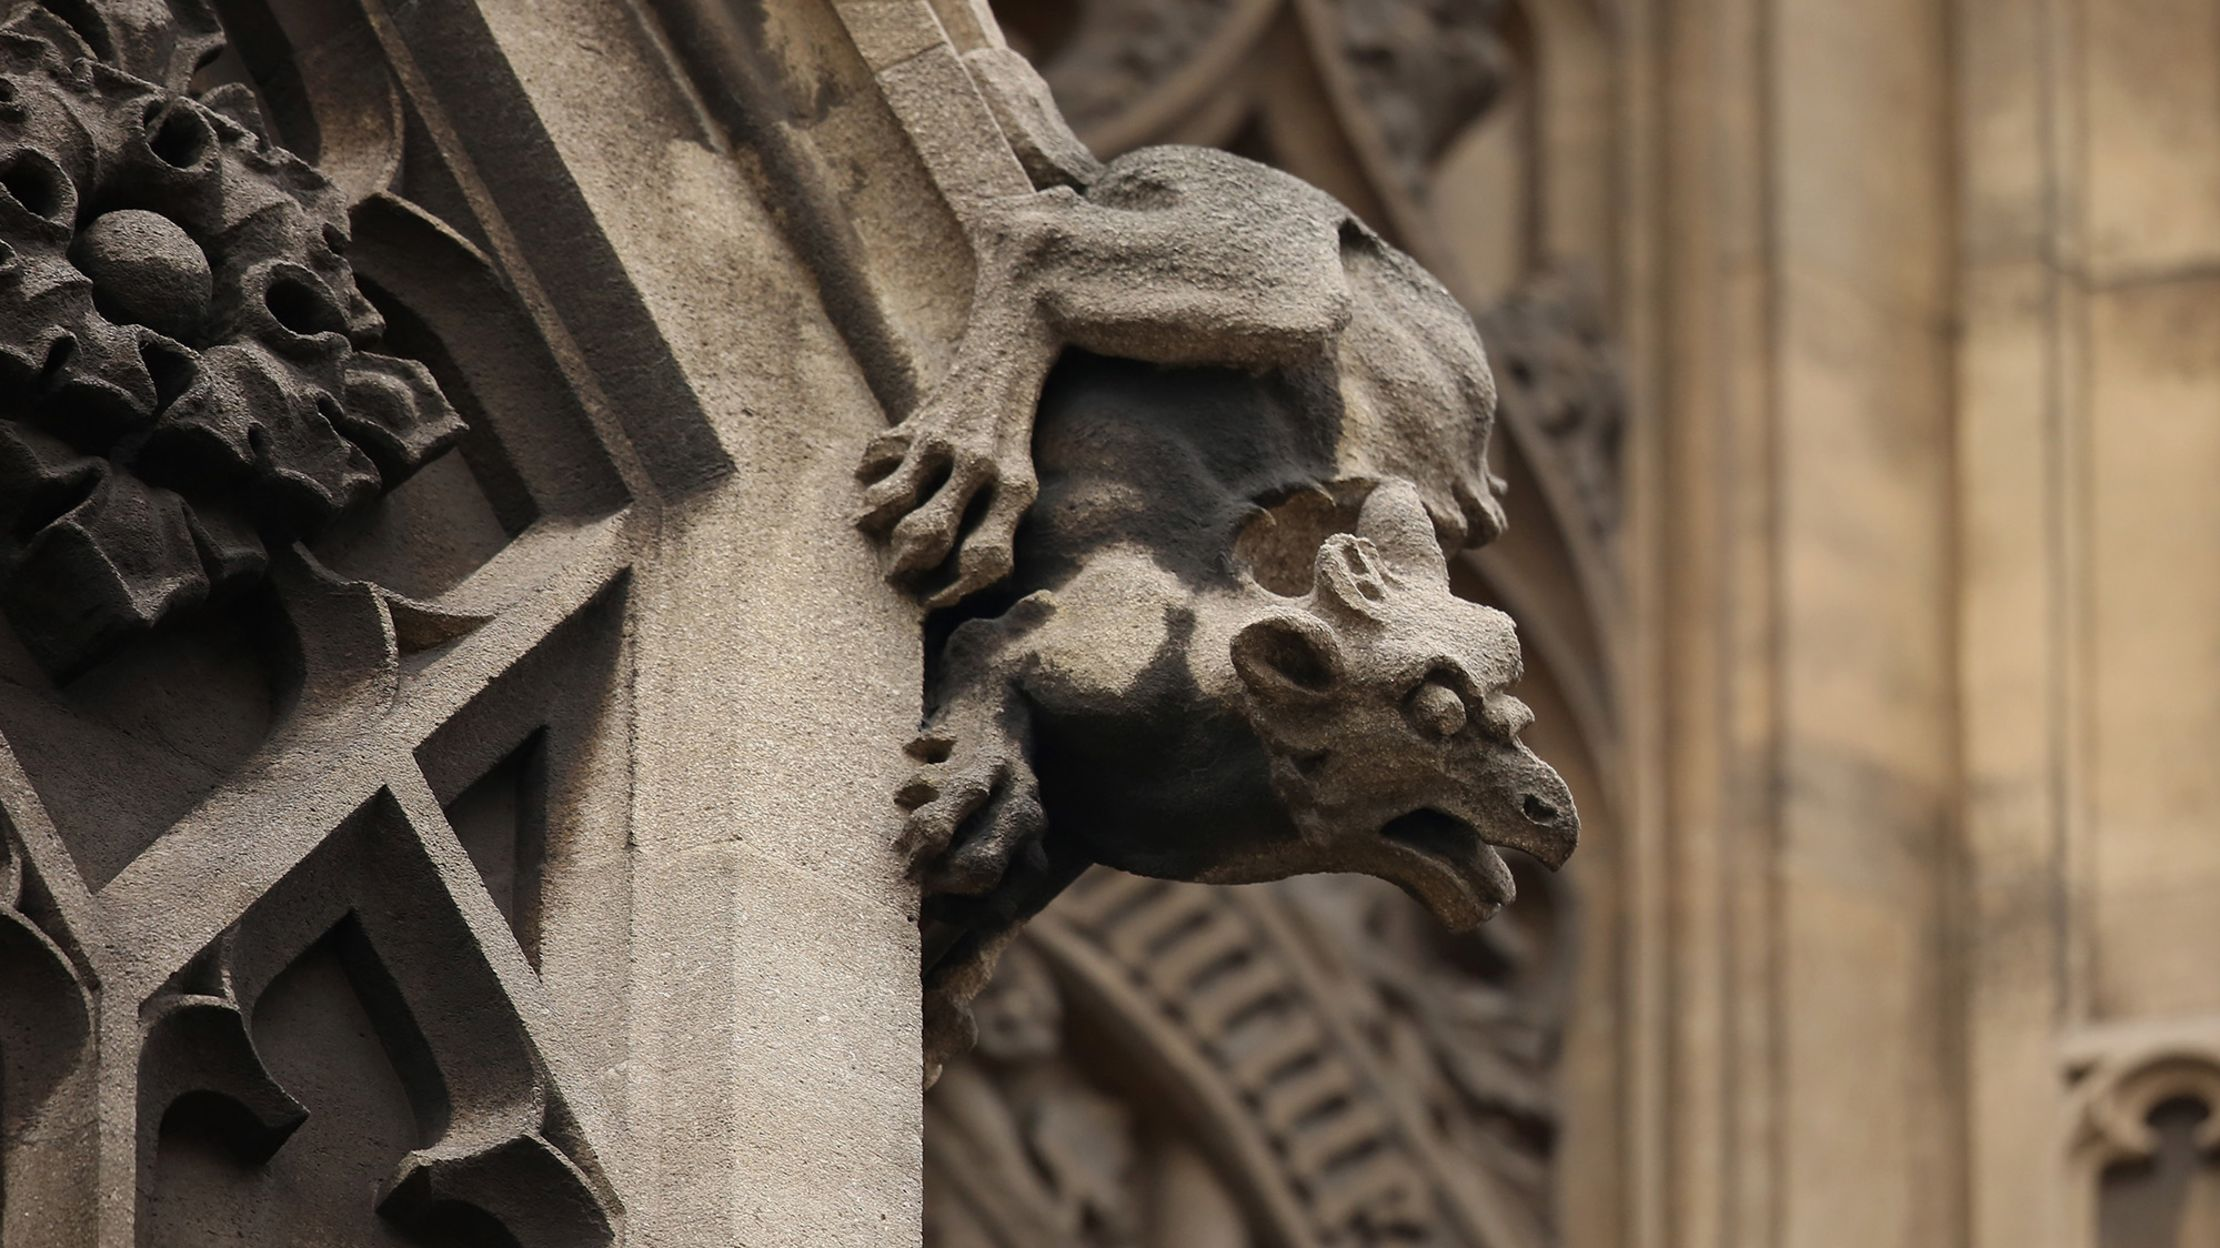 Notre Dame: Christianity and the Genocide of Gods in France